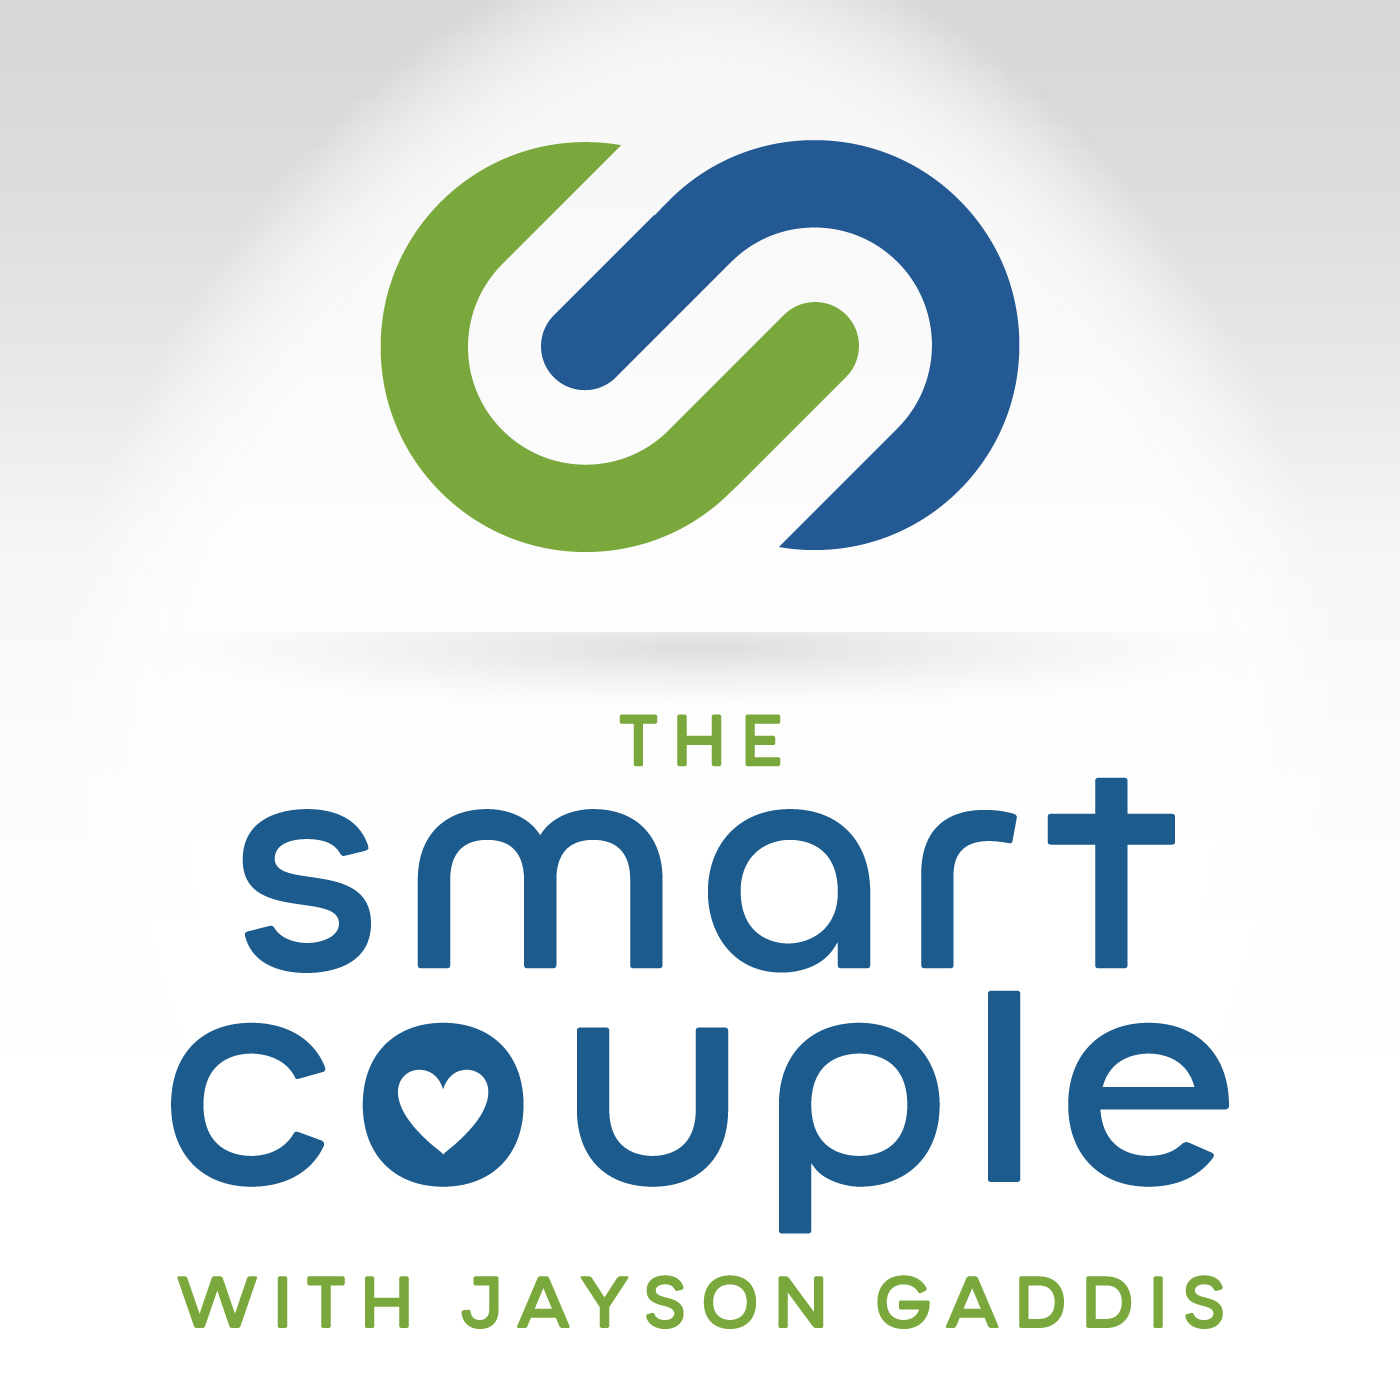 The Relationship School Podcast - 3 types of men in partnership, which one are you? - Smart Couple Podcast #230